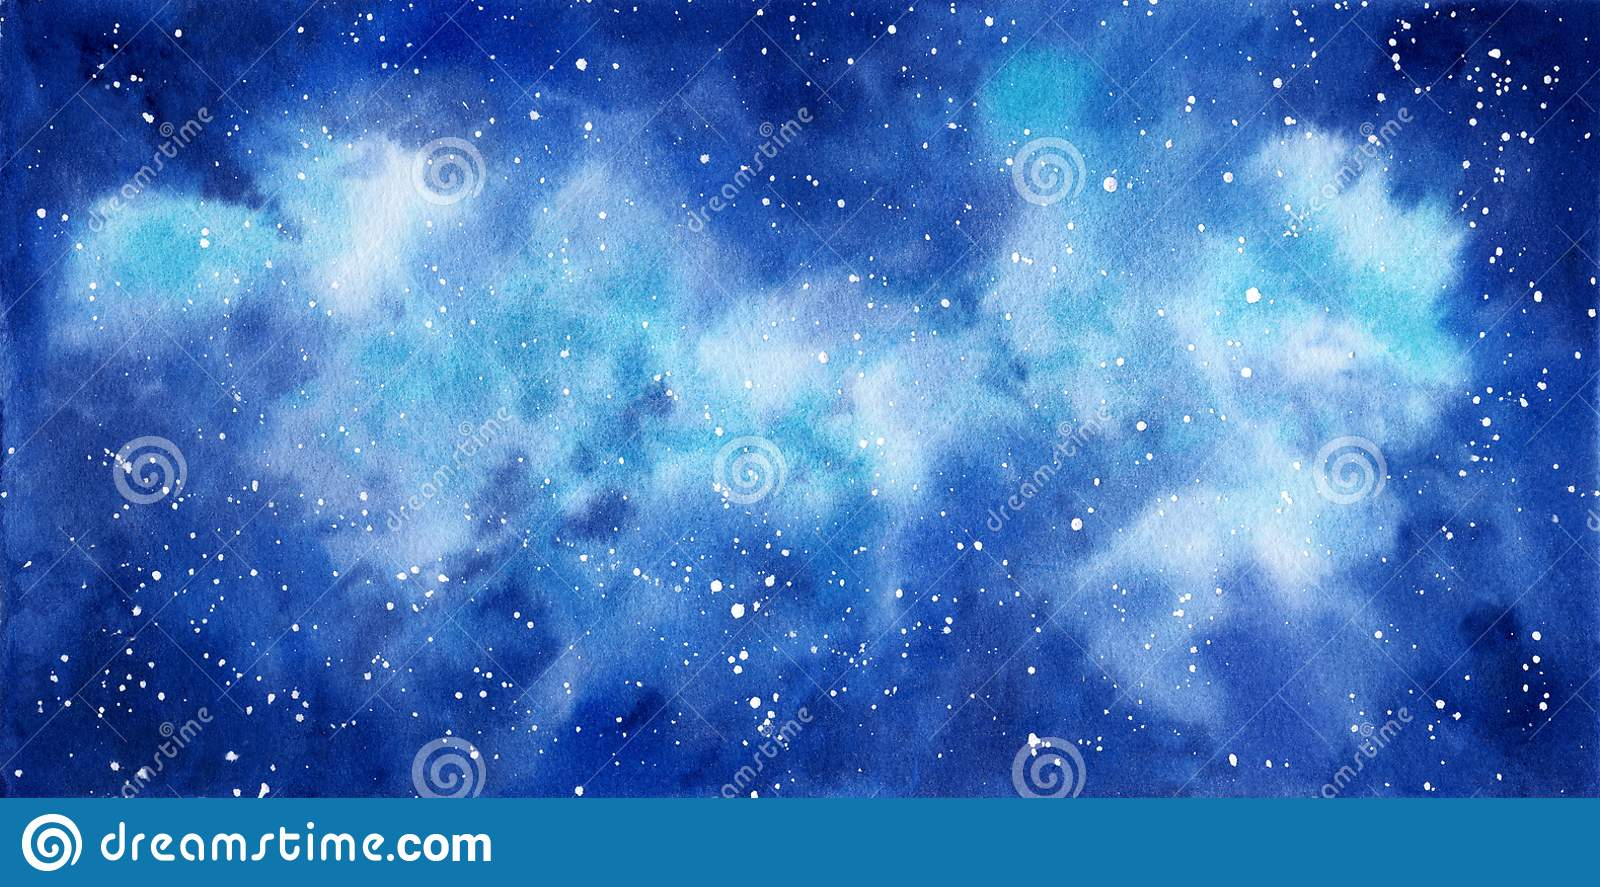 Space watercolor hand painted background. Abstract galaxy painting.